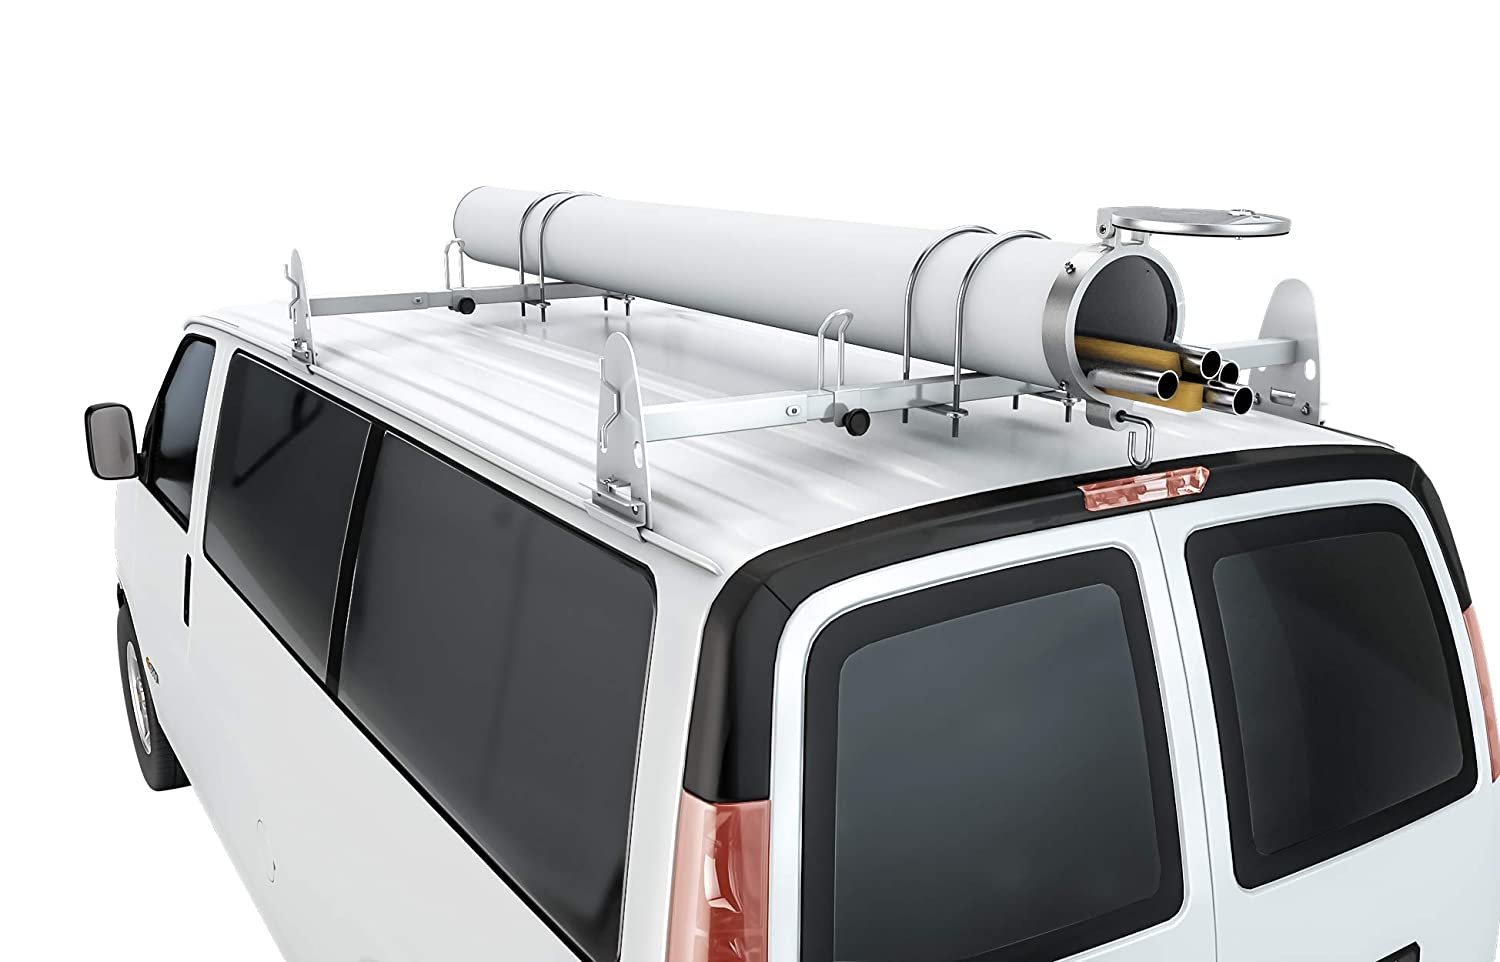 AA-Racks Universal Conduit Carrier Kit Fit 6 PVC Pipe No Drilling Required